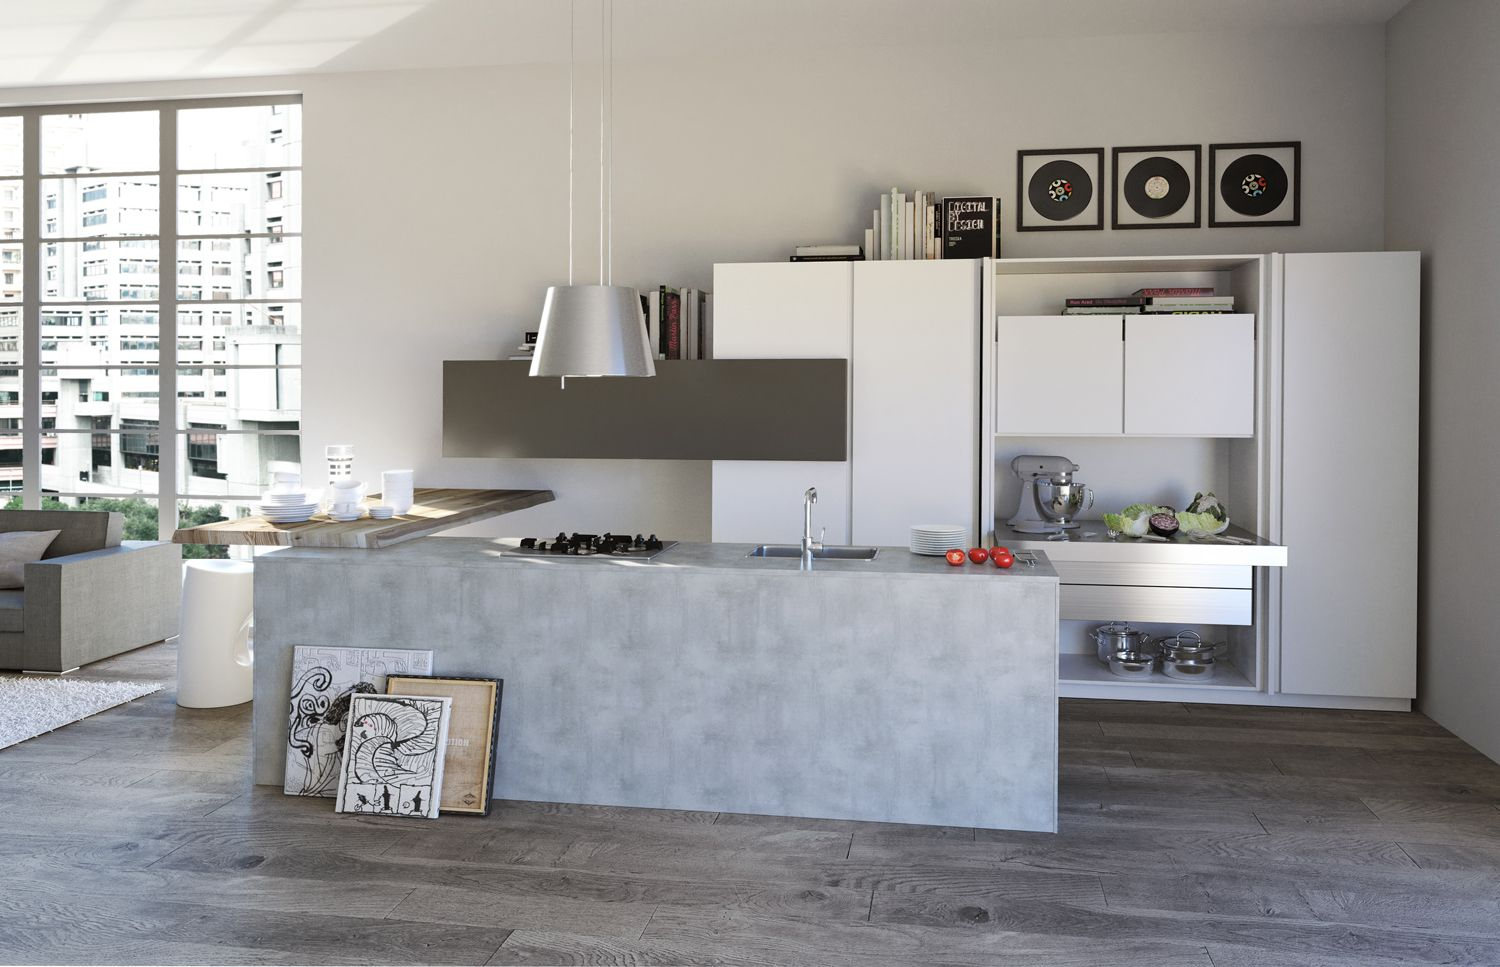 Cucine Moderne A Poco Prezzo - Home Design E Interior Ideas ...